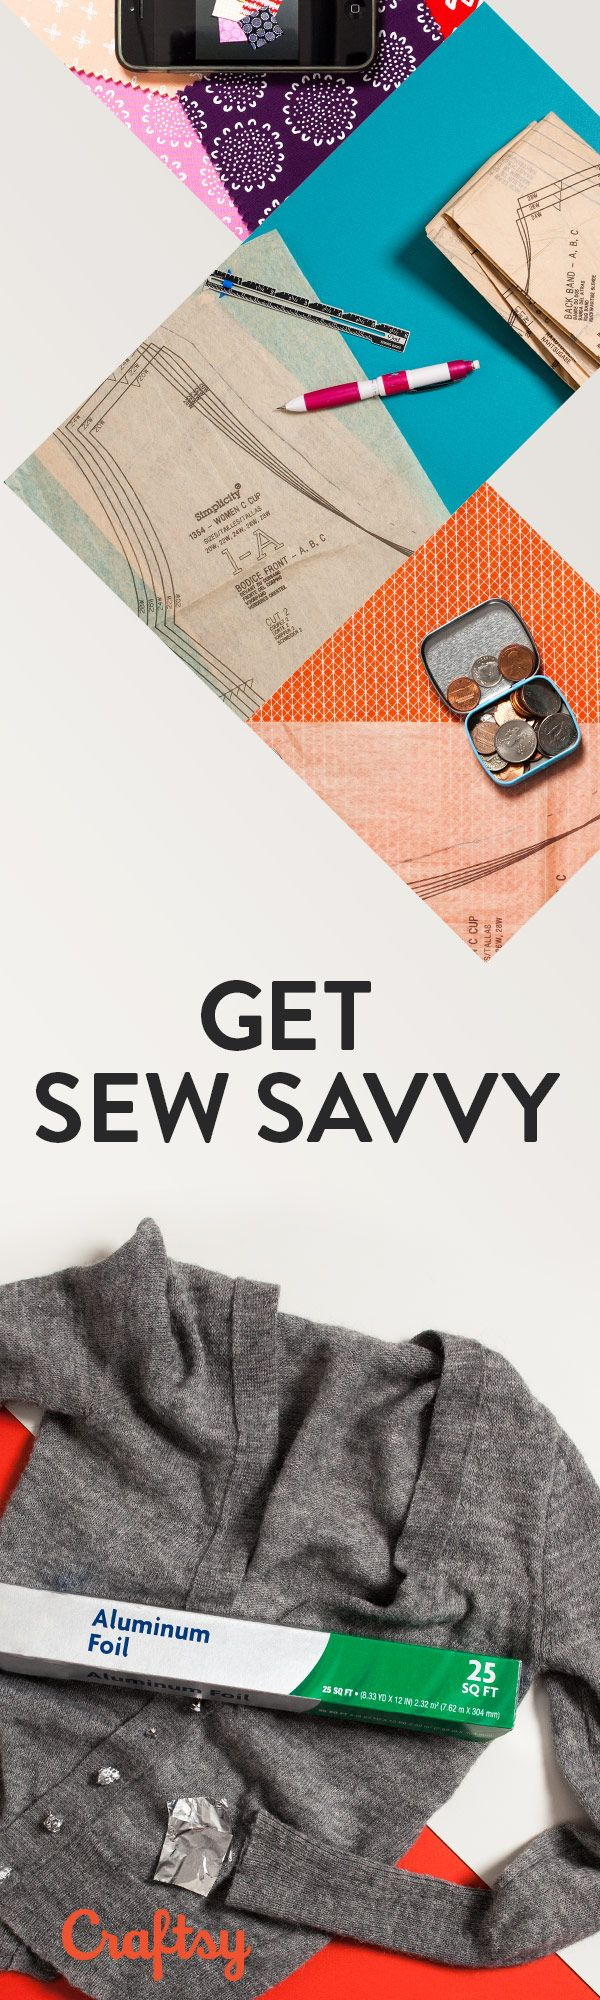 Weu0027ve rounded up our smartest sewing tips